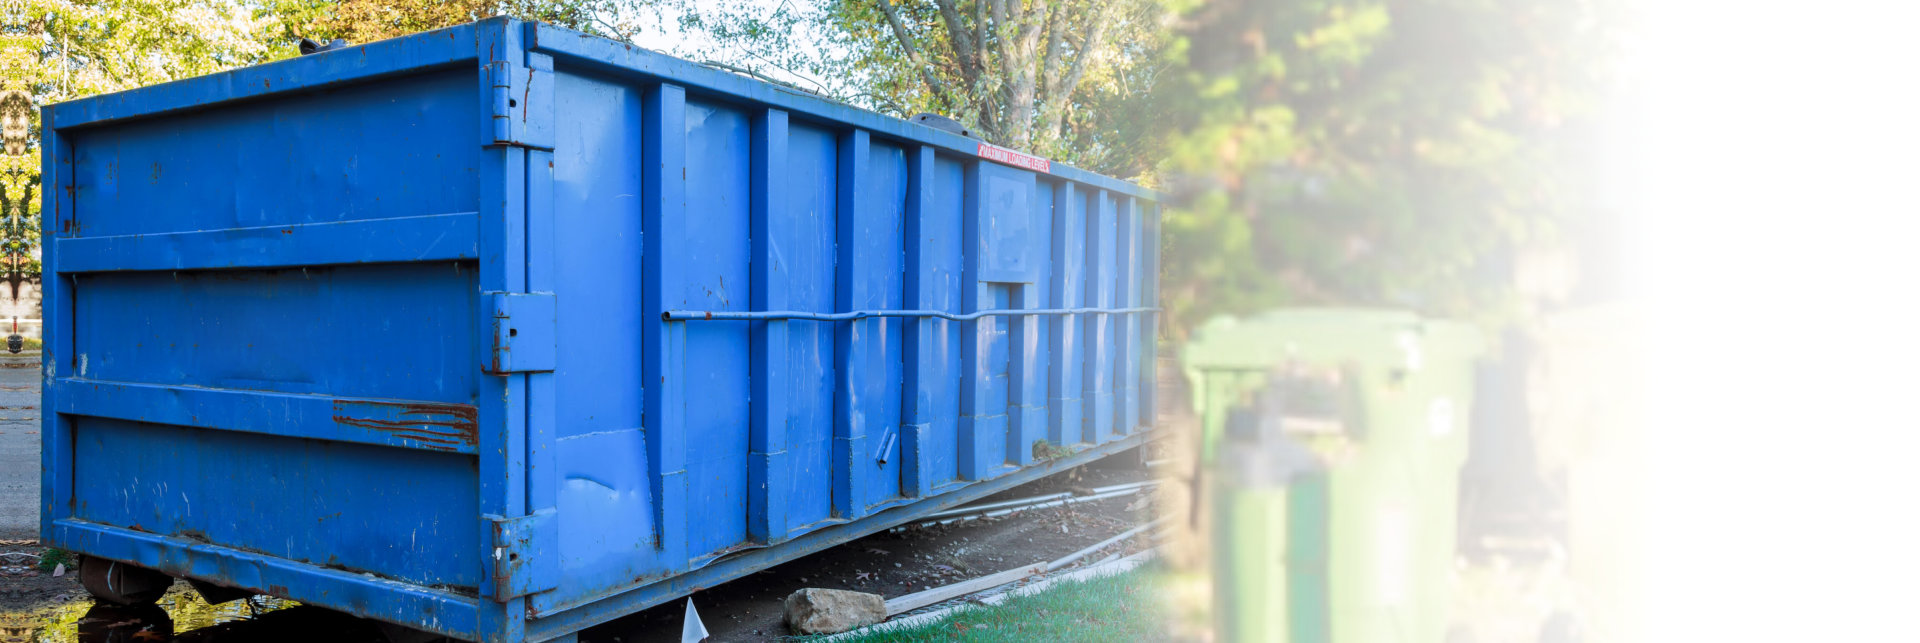 huge blue container